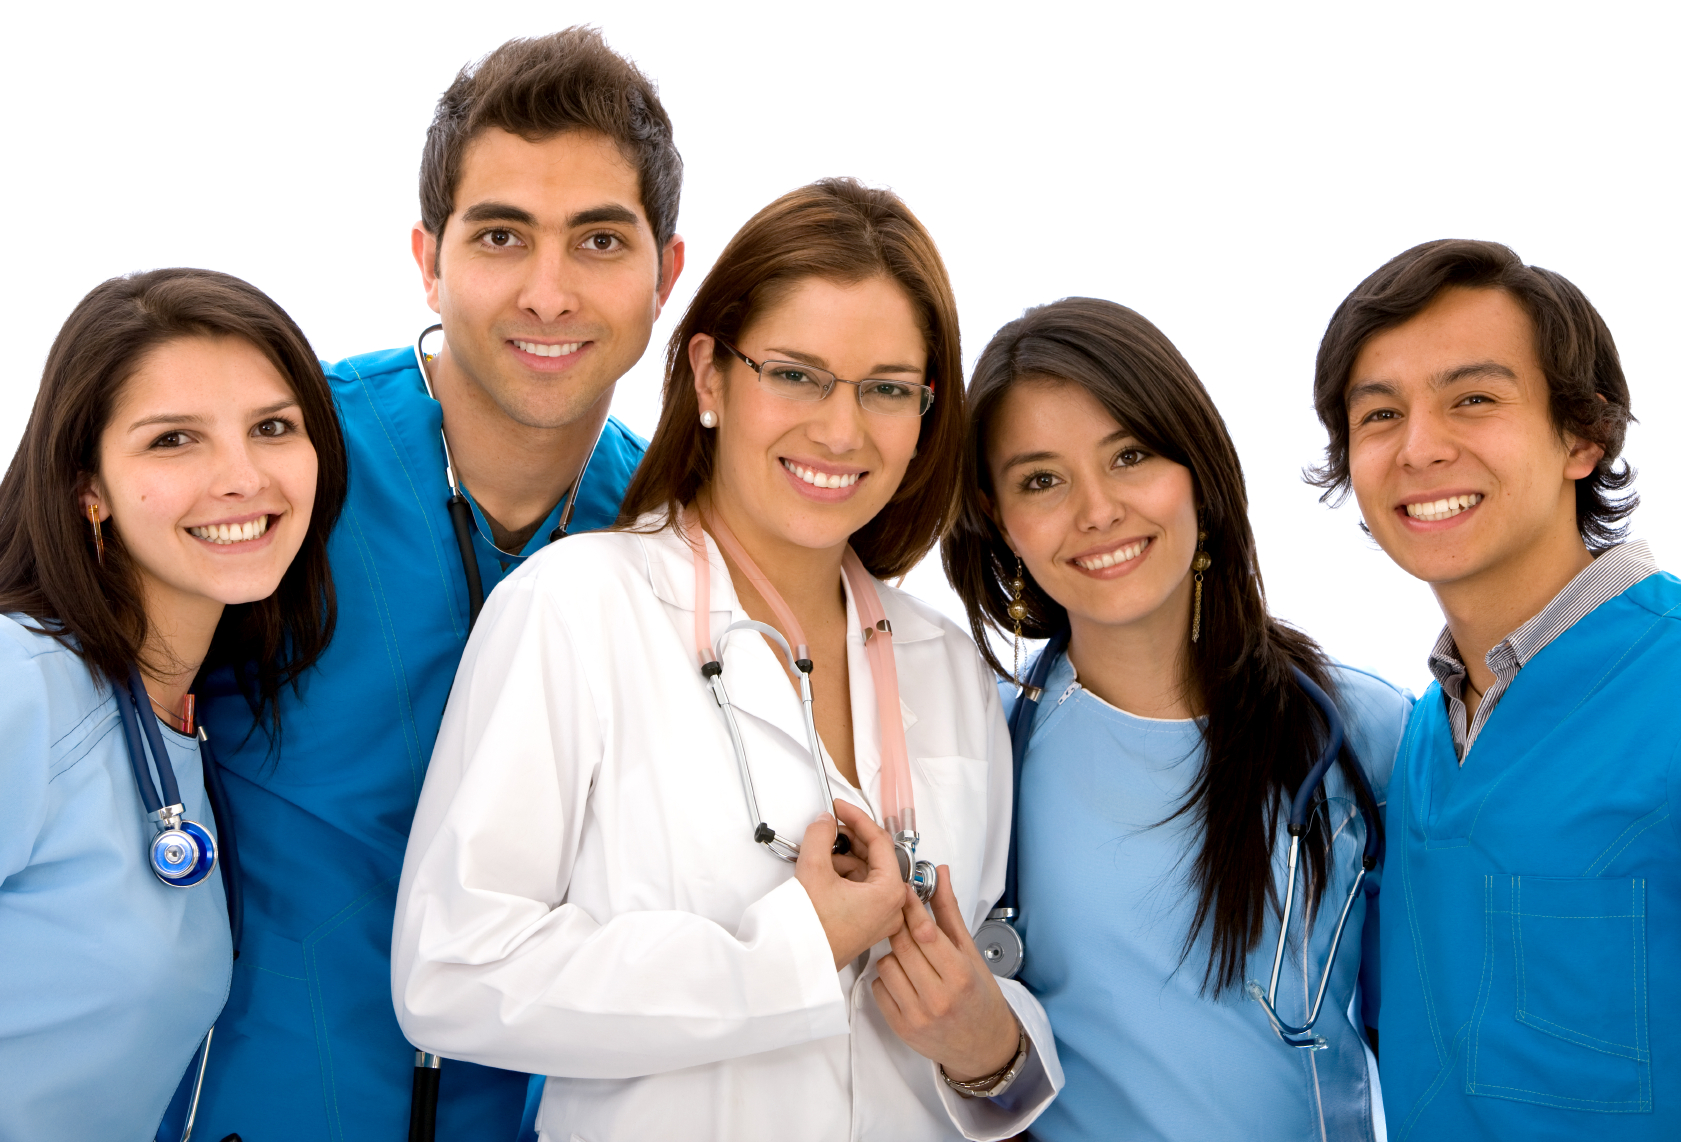 nursing health care and nurses What you will do registered nurses may do some or all of the following: assess, plan, co-ordinate and carry out nursing care to improve patients' health.